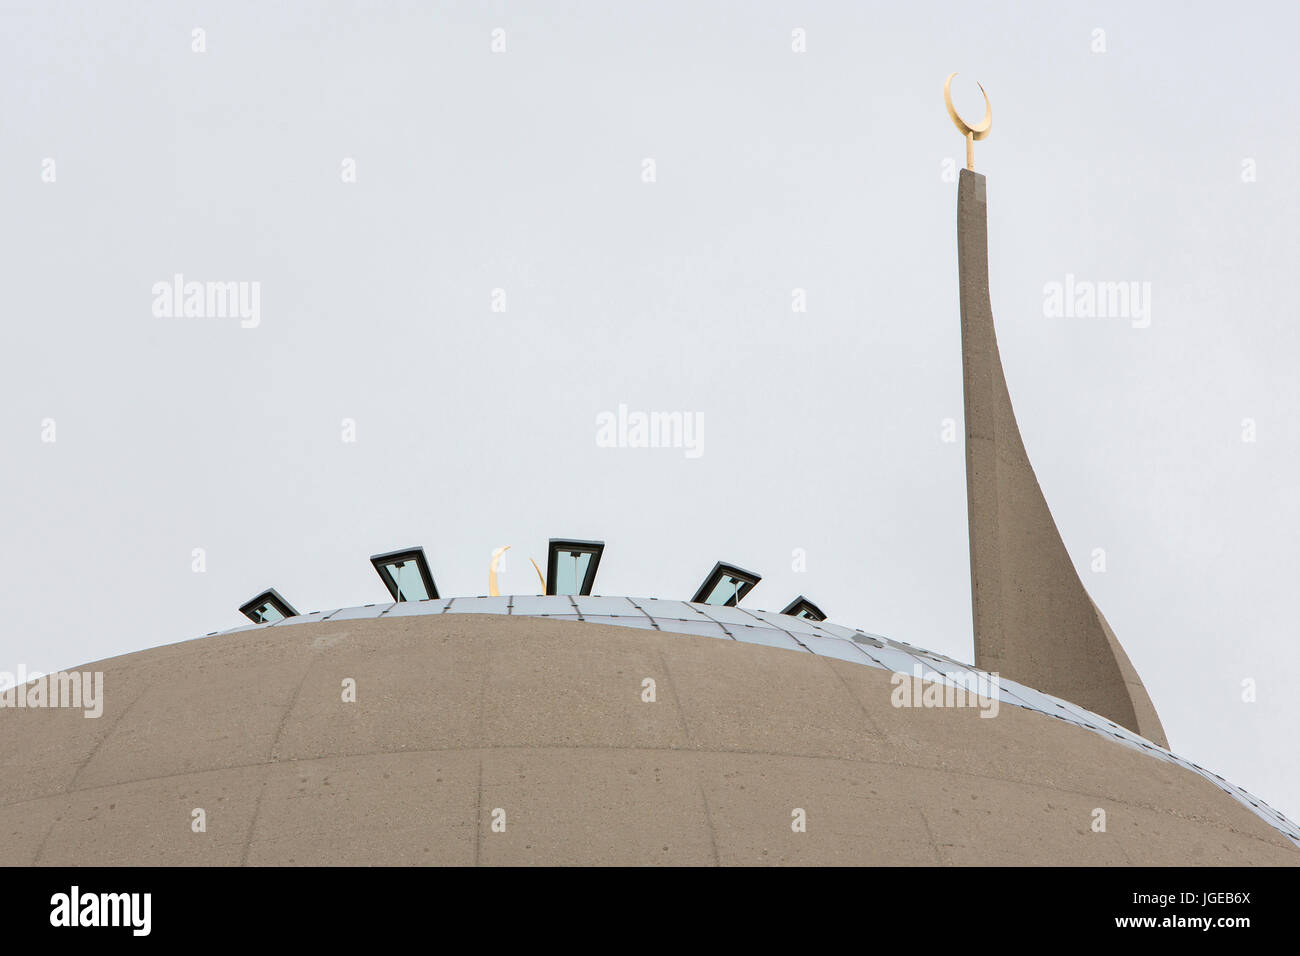 DITIB Mosque in Cologne - Stock Image